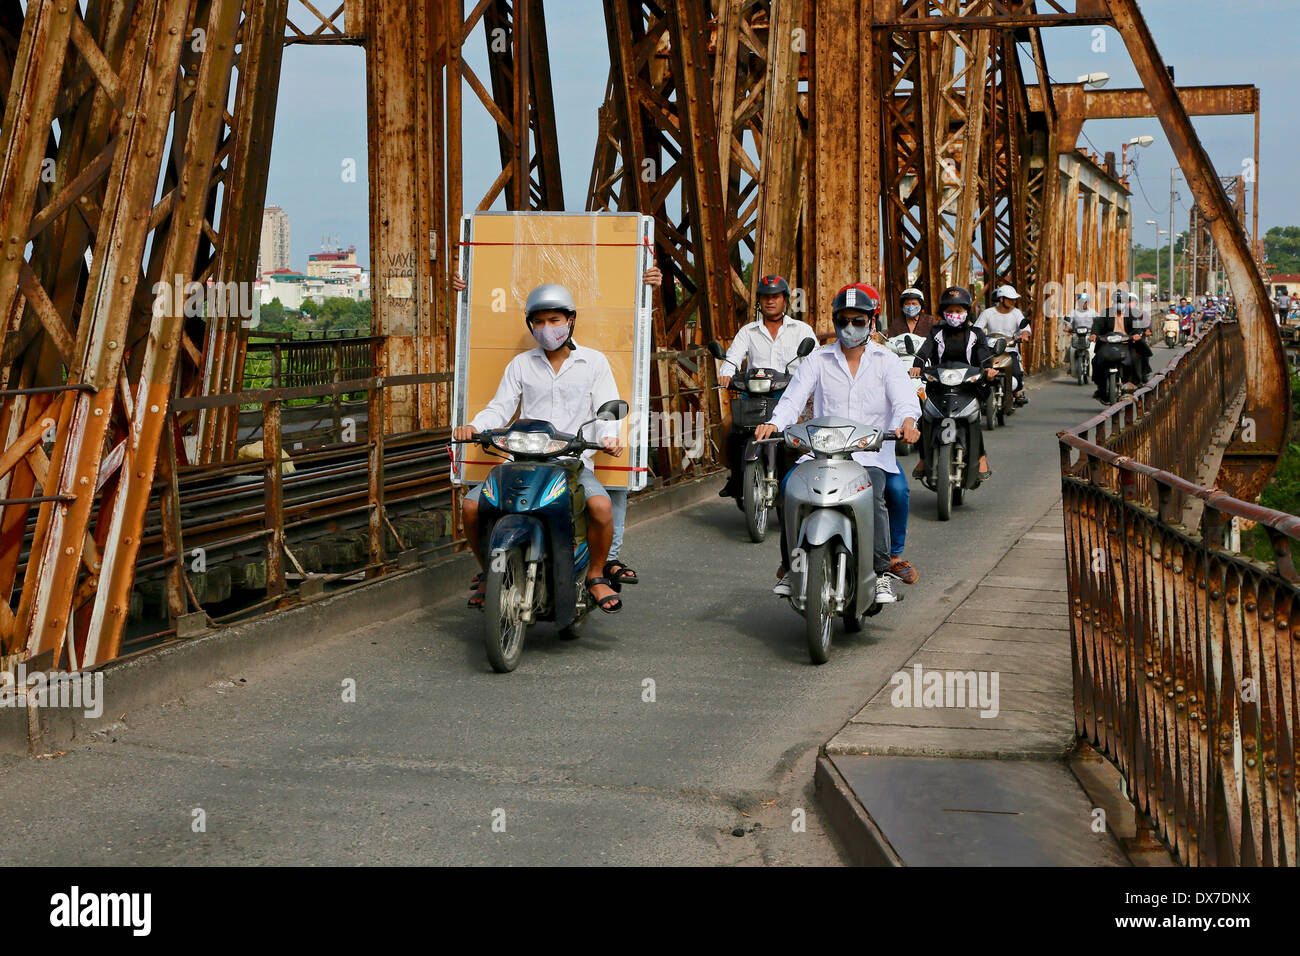 Motorcycles cross the Long Bien Bridge to Hanoi. The bridge which spans the Red River is 1682 m long and opened in 1903. - Stock Image